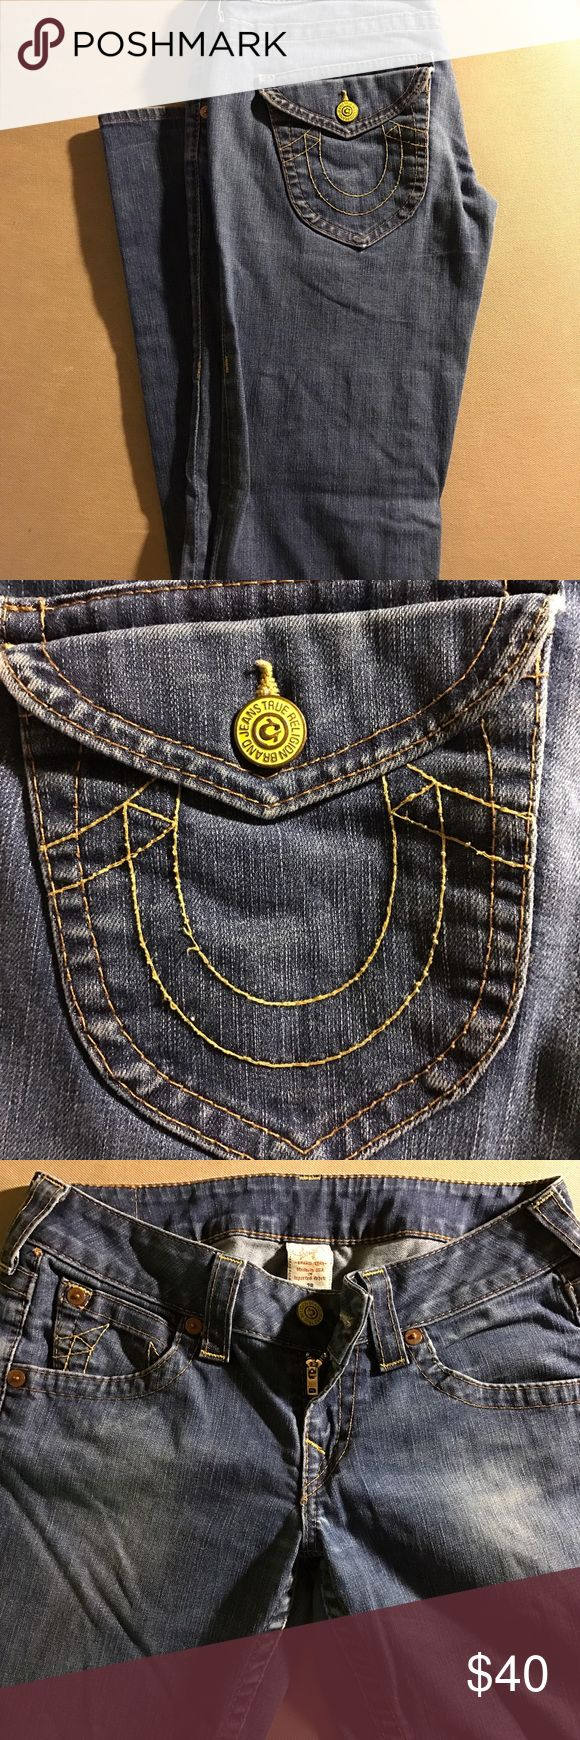 True religion jeans Boot cut True Religion jeans. Original bag and tag included. True Religion Jeans Boot Cut